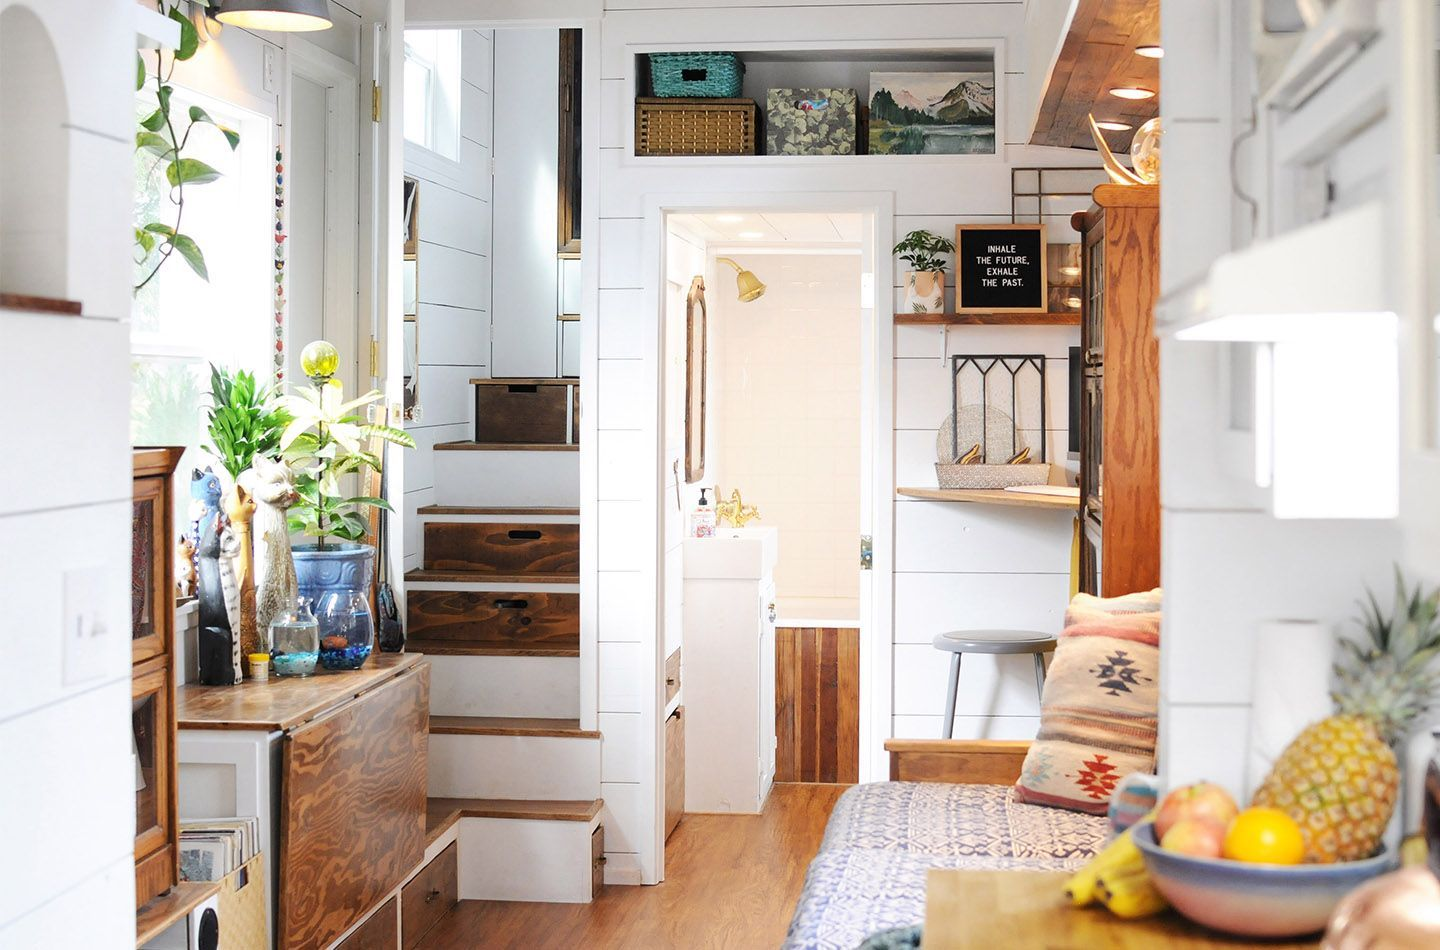 Her tiny home self built two bedroom house in california tinyhomesaustralia also rh pinterest